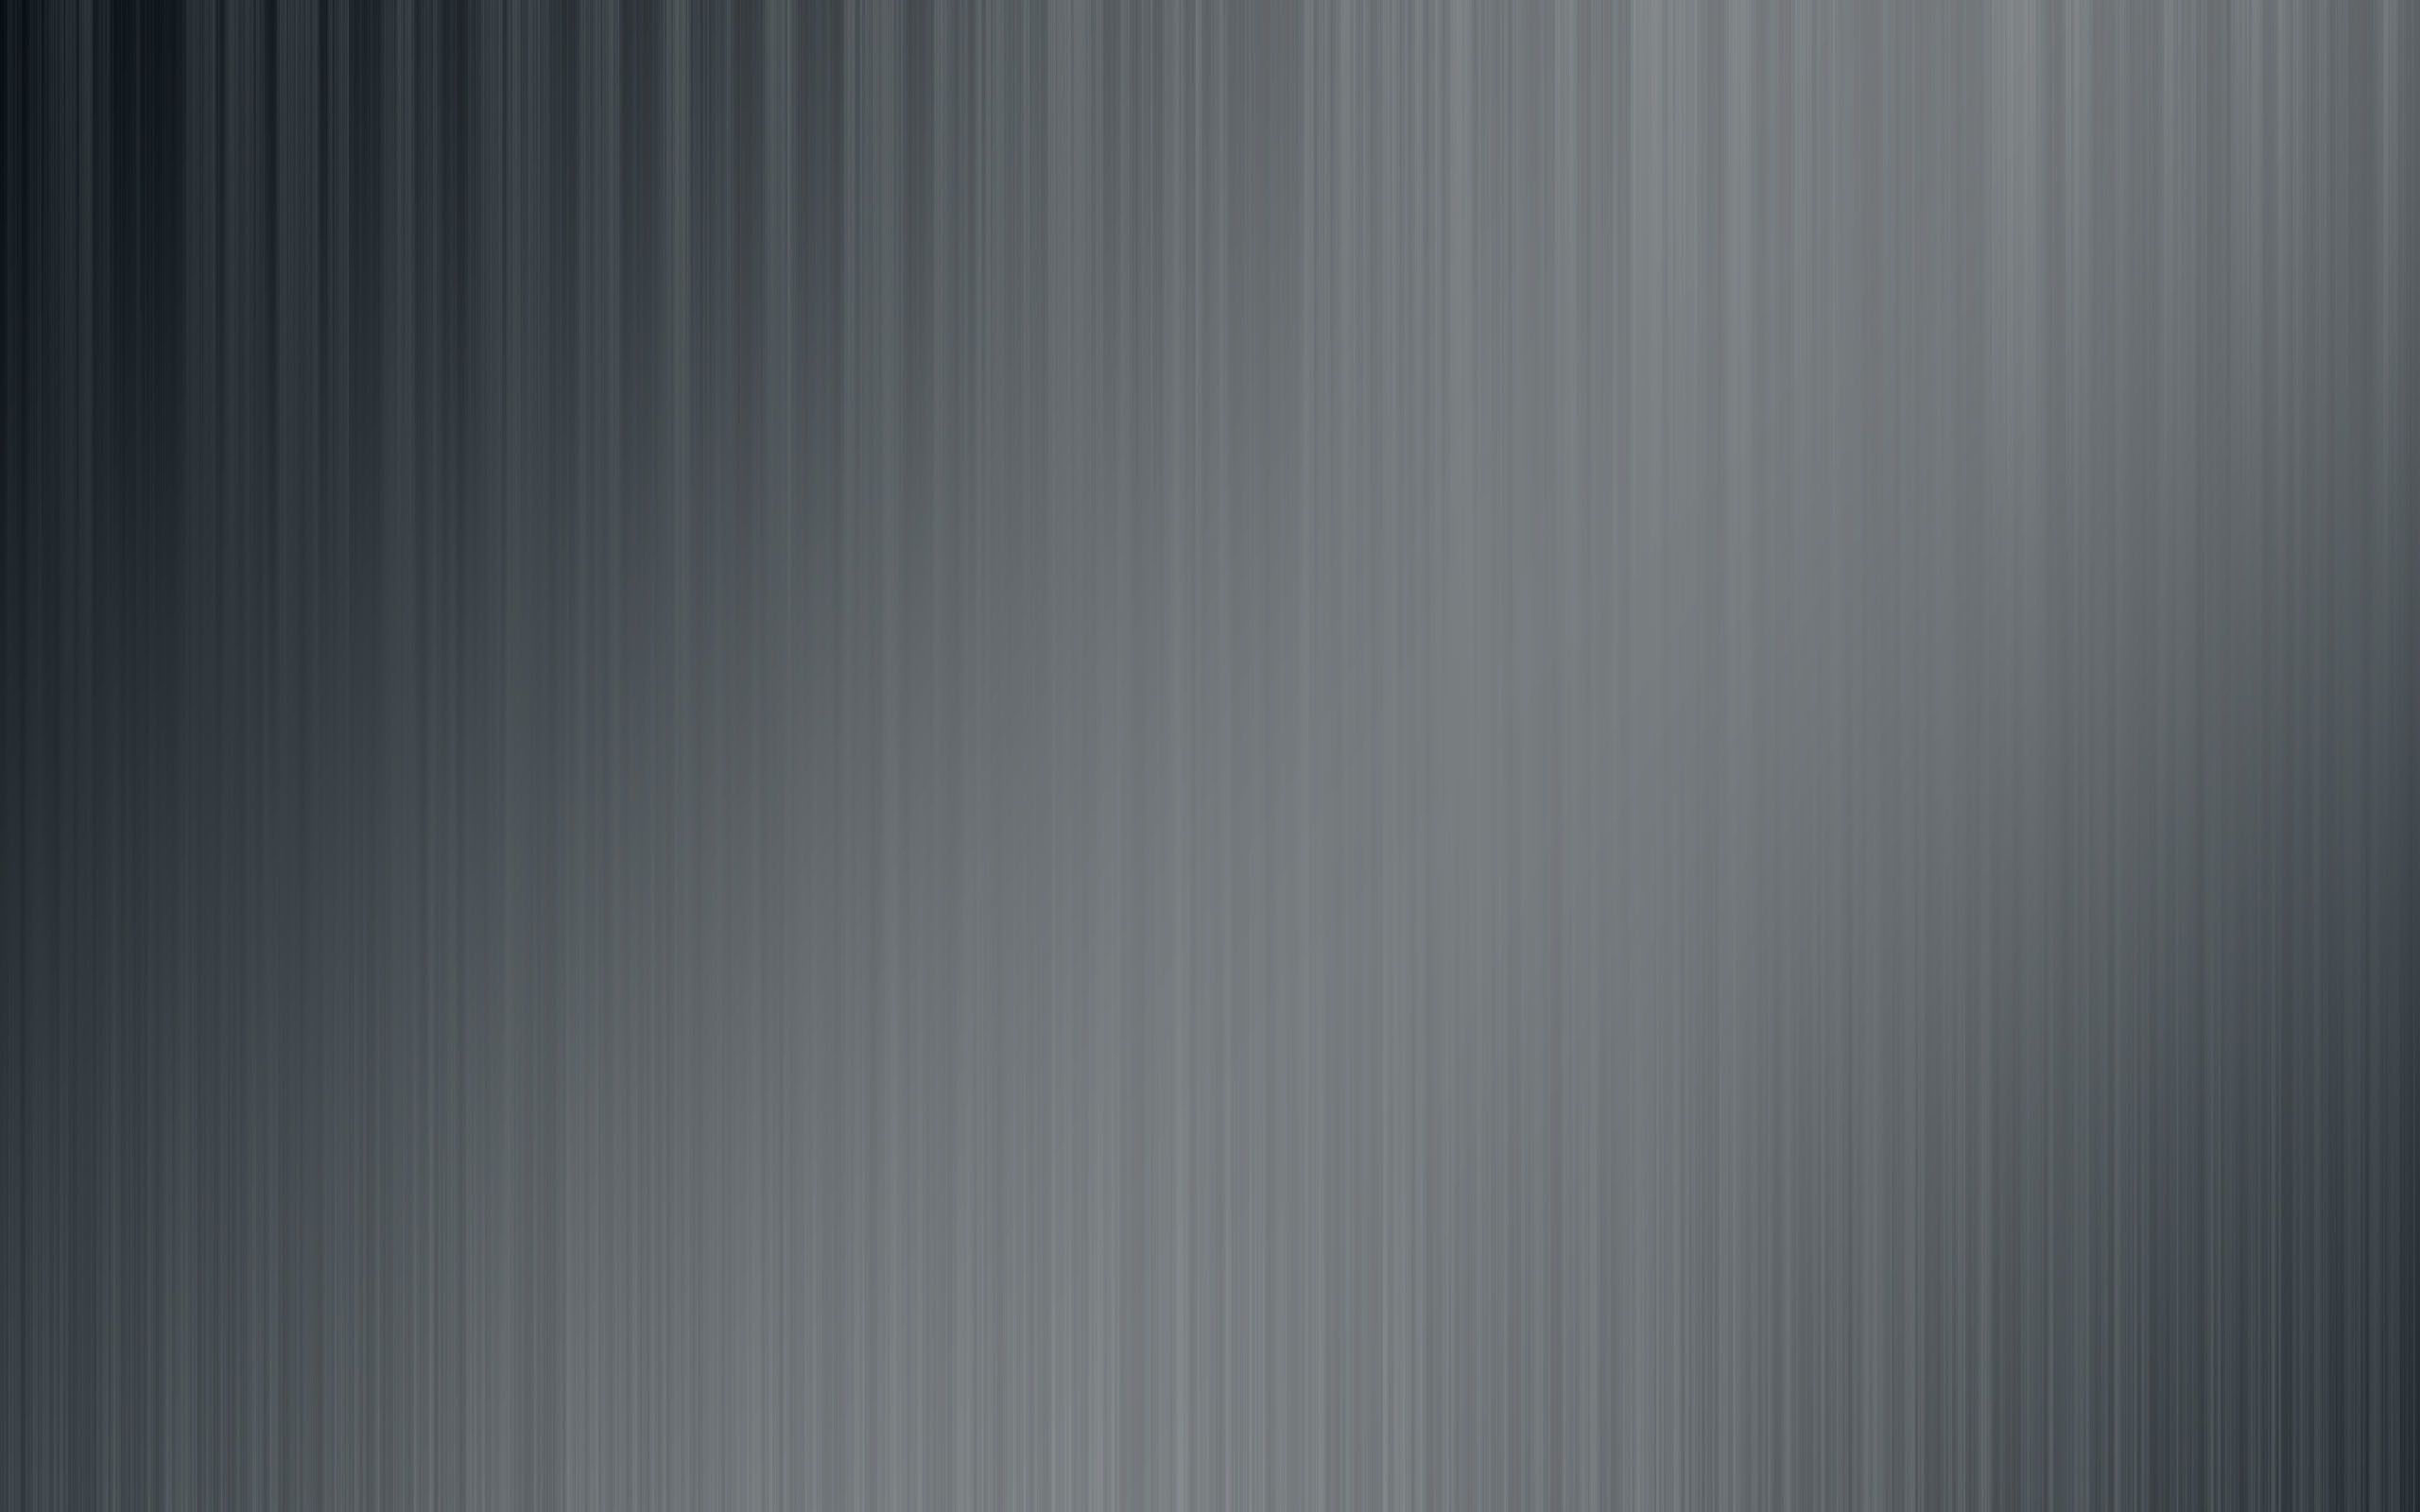 Res: 2560x1600, FHDQ Live Grey Backgrounds - Andres Otto for PC & Mac, Tablet, Laptop,  Mobile